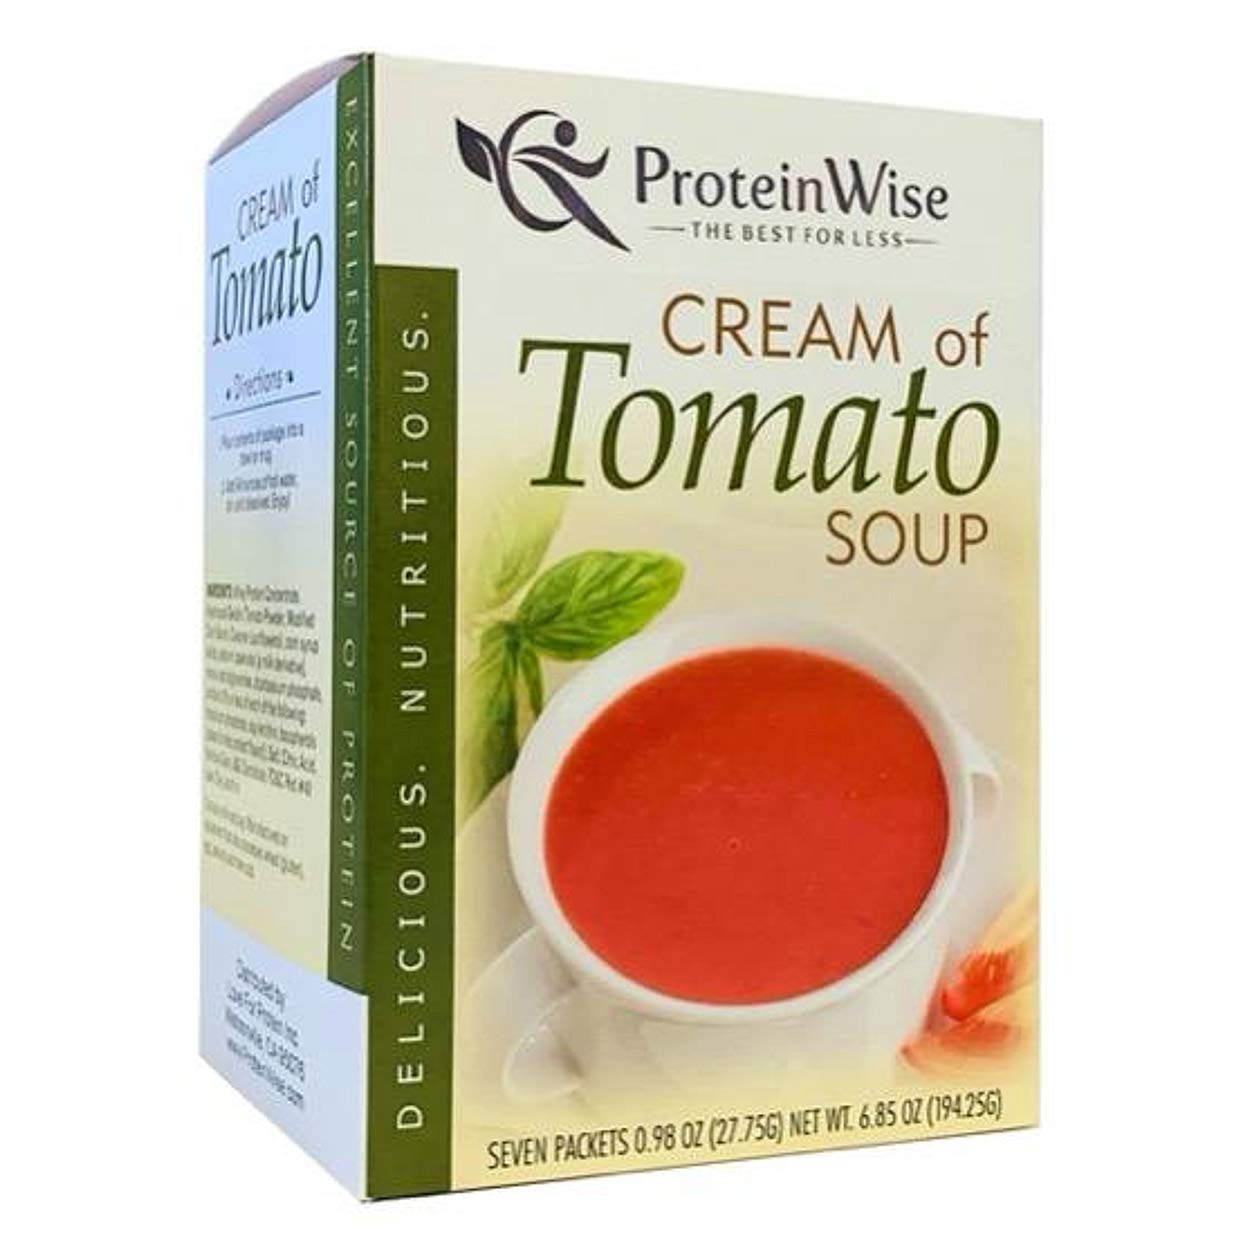 Sale price Selling and selling ProteinWise - Cream of Tomato Soup Protein 7 Box